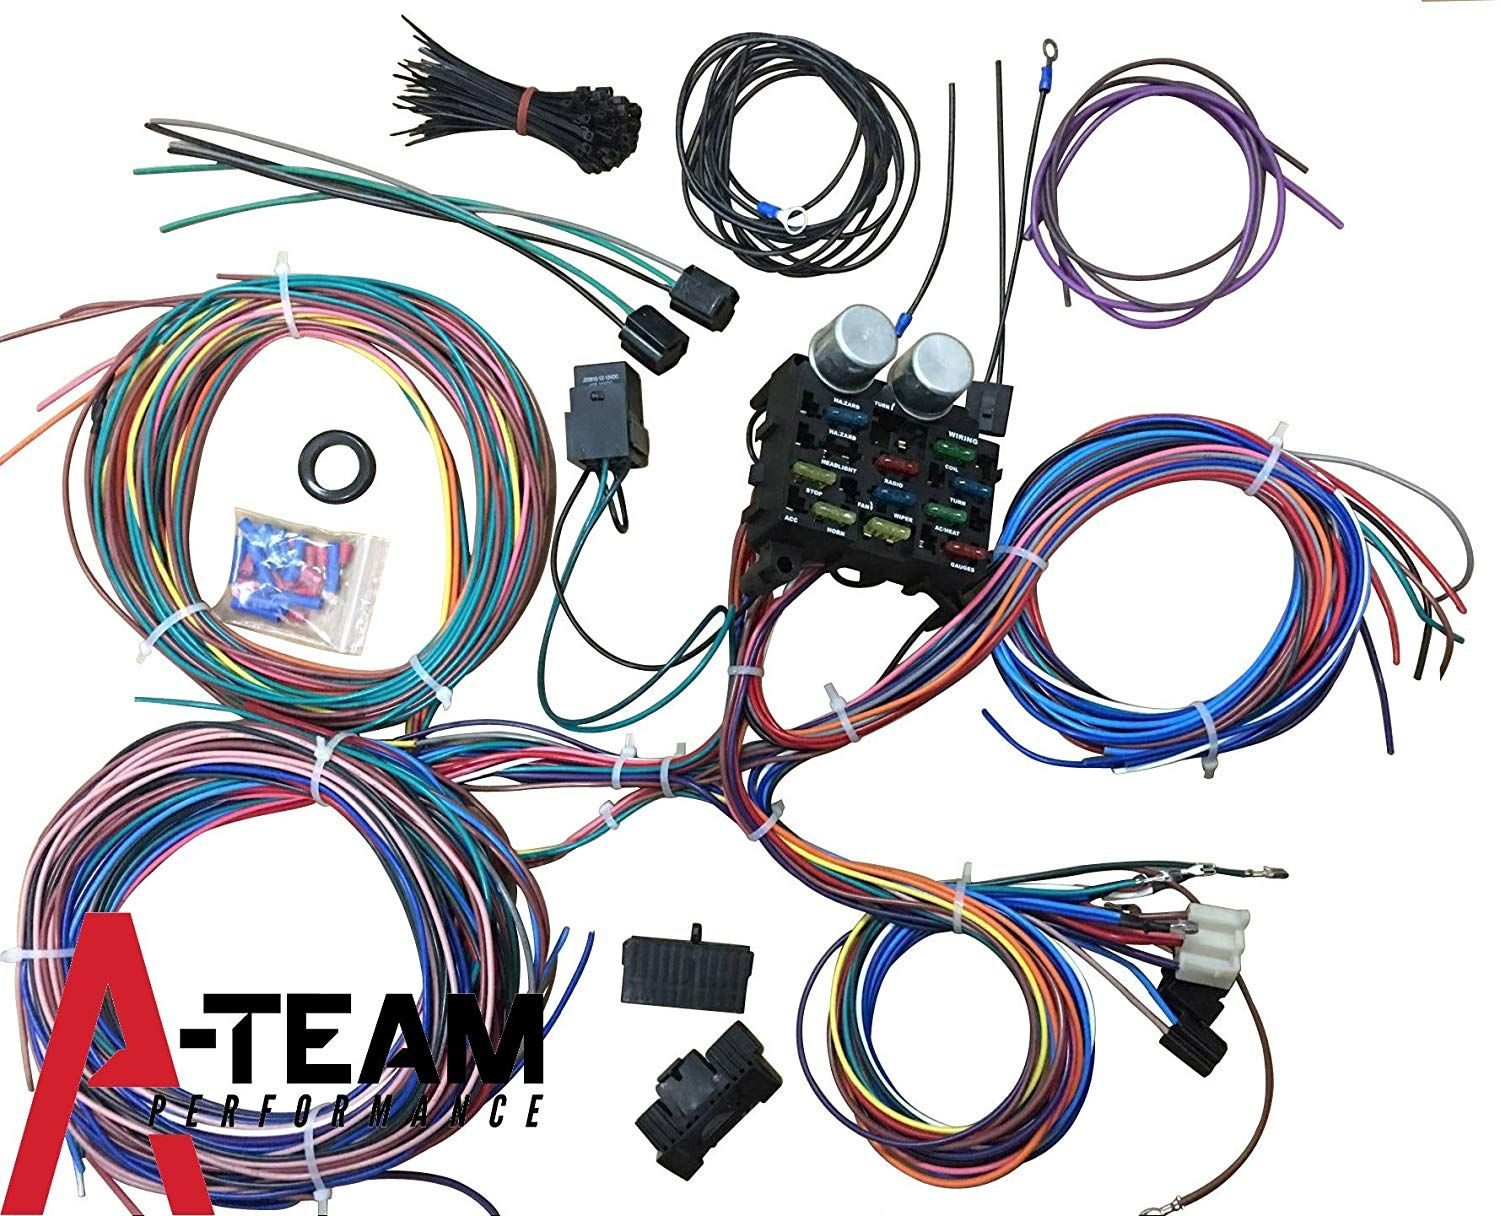 medium resolution of a team performance 12 standard circuit universal wiring harness kit muscle car hot rod street rod new xl wire you can find more details by visiting the